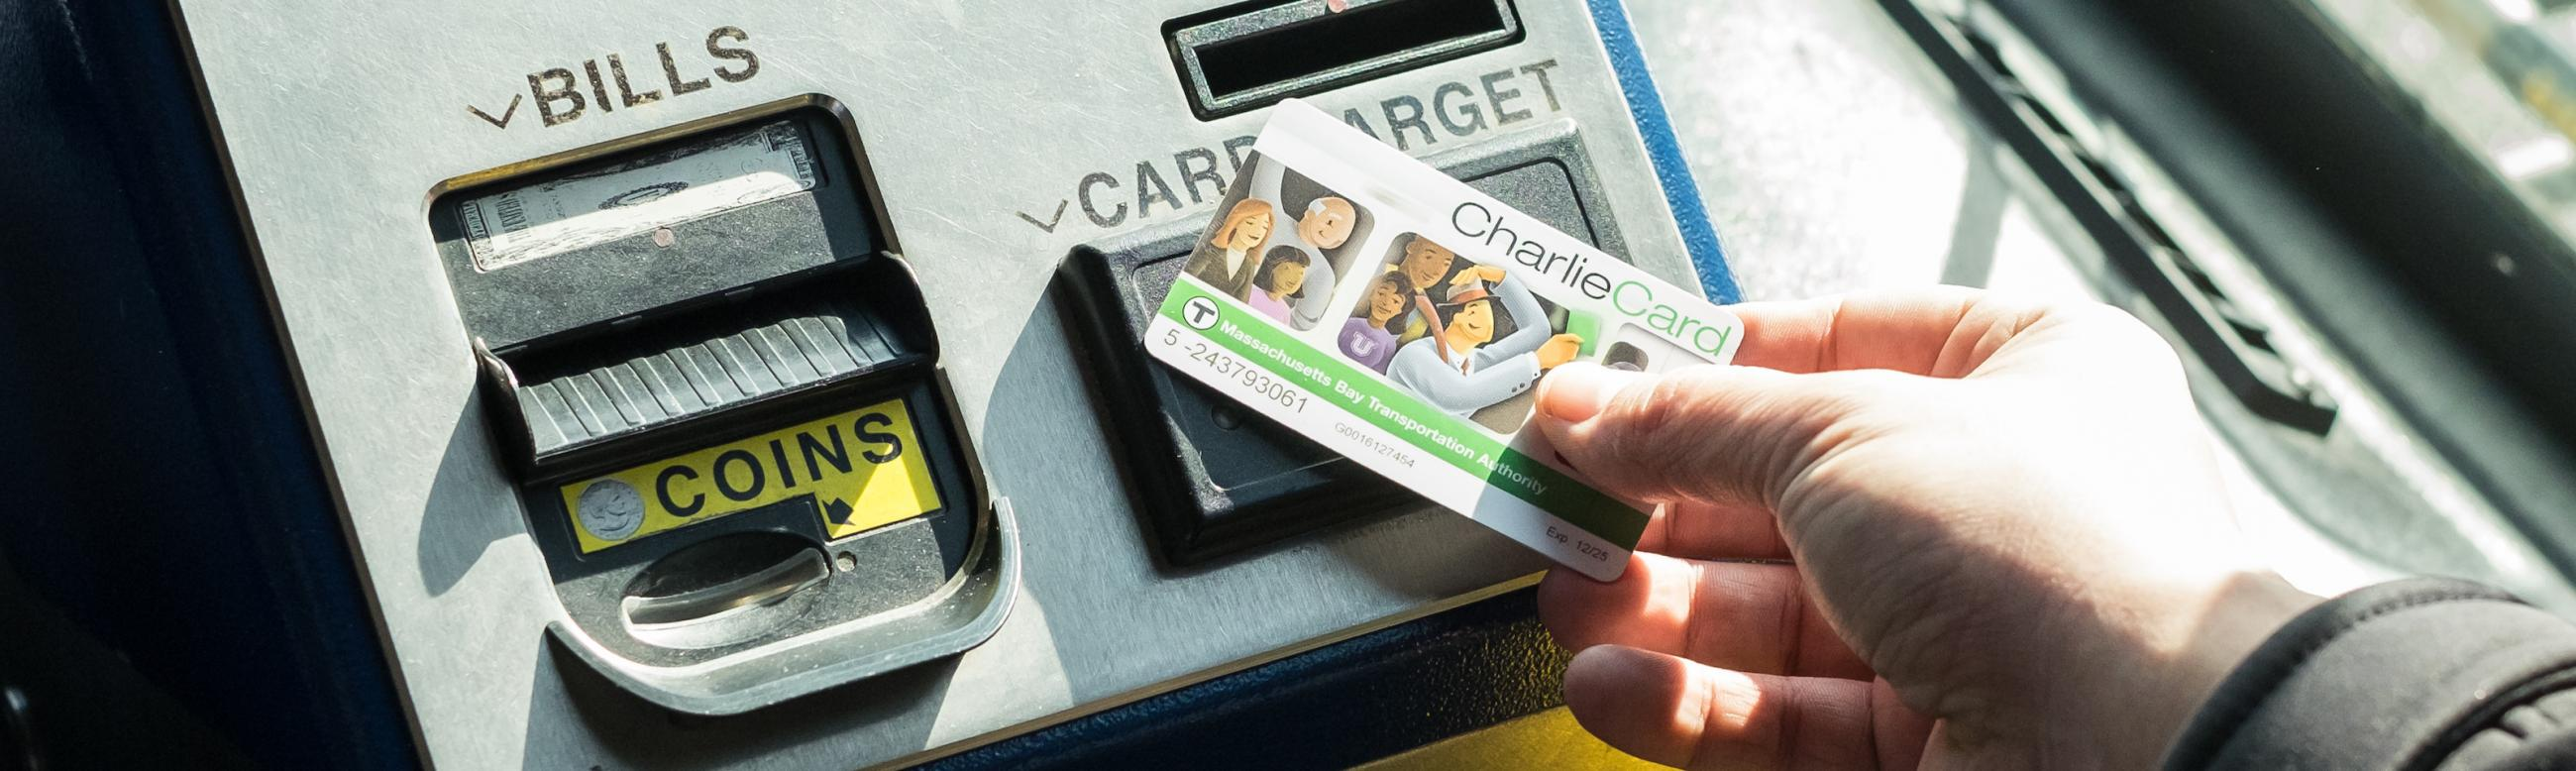 CharlieCard being used at fare box